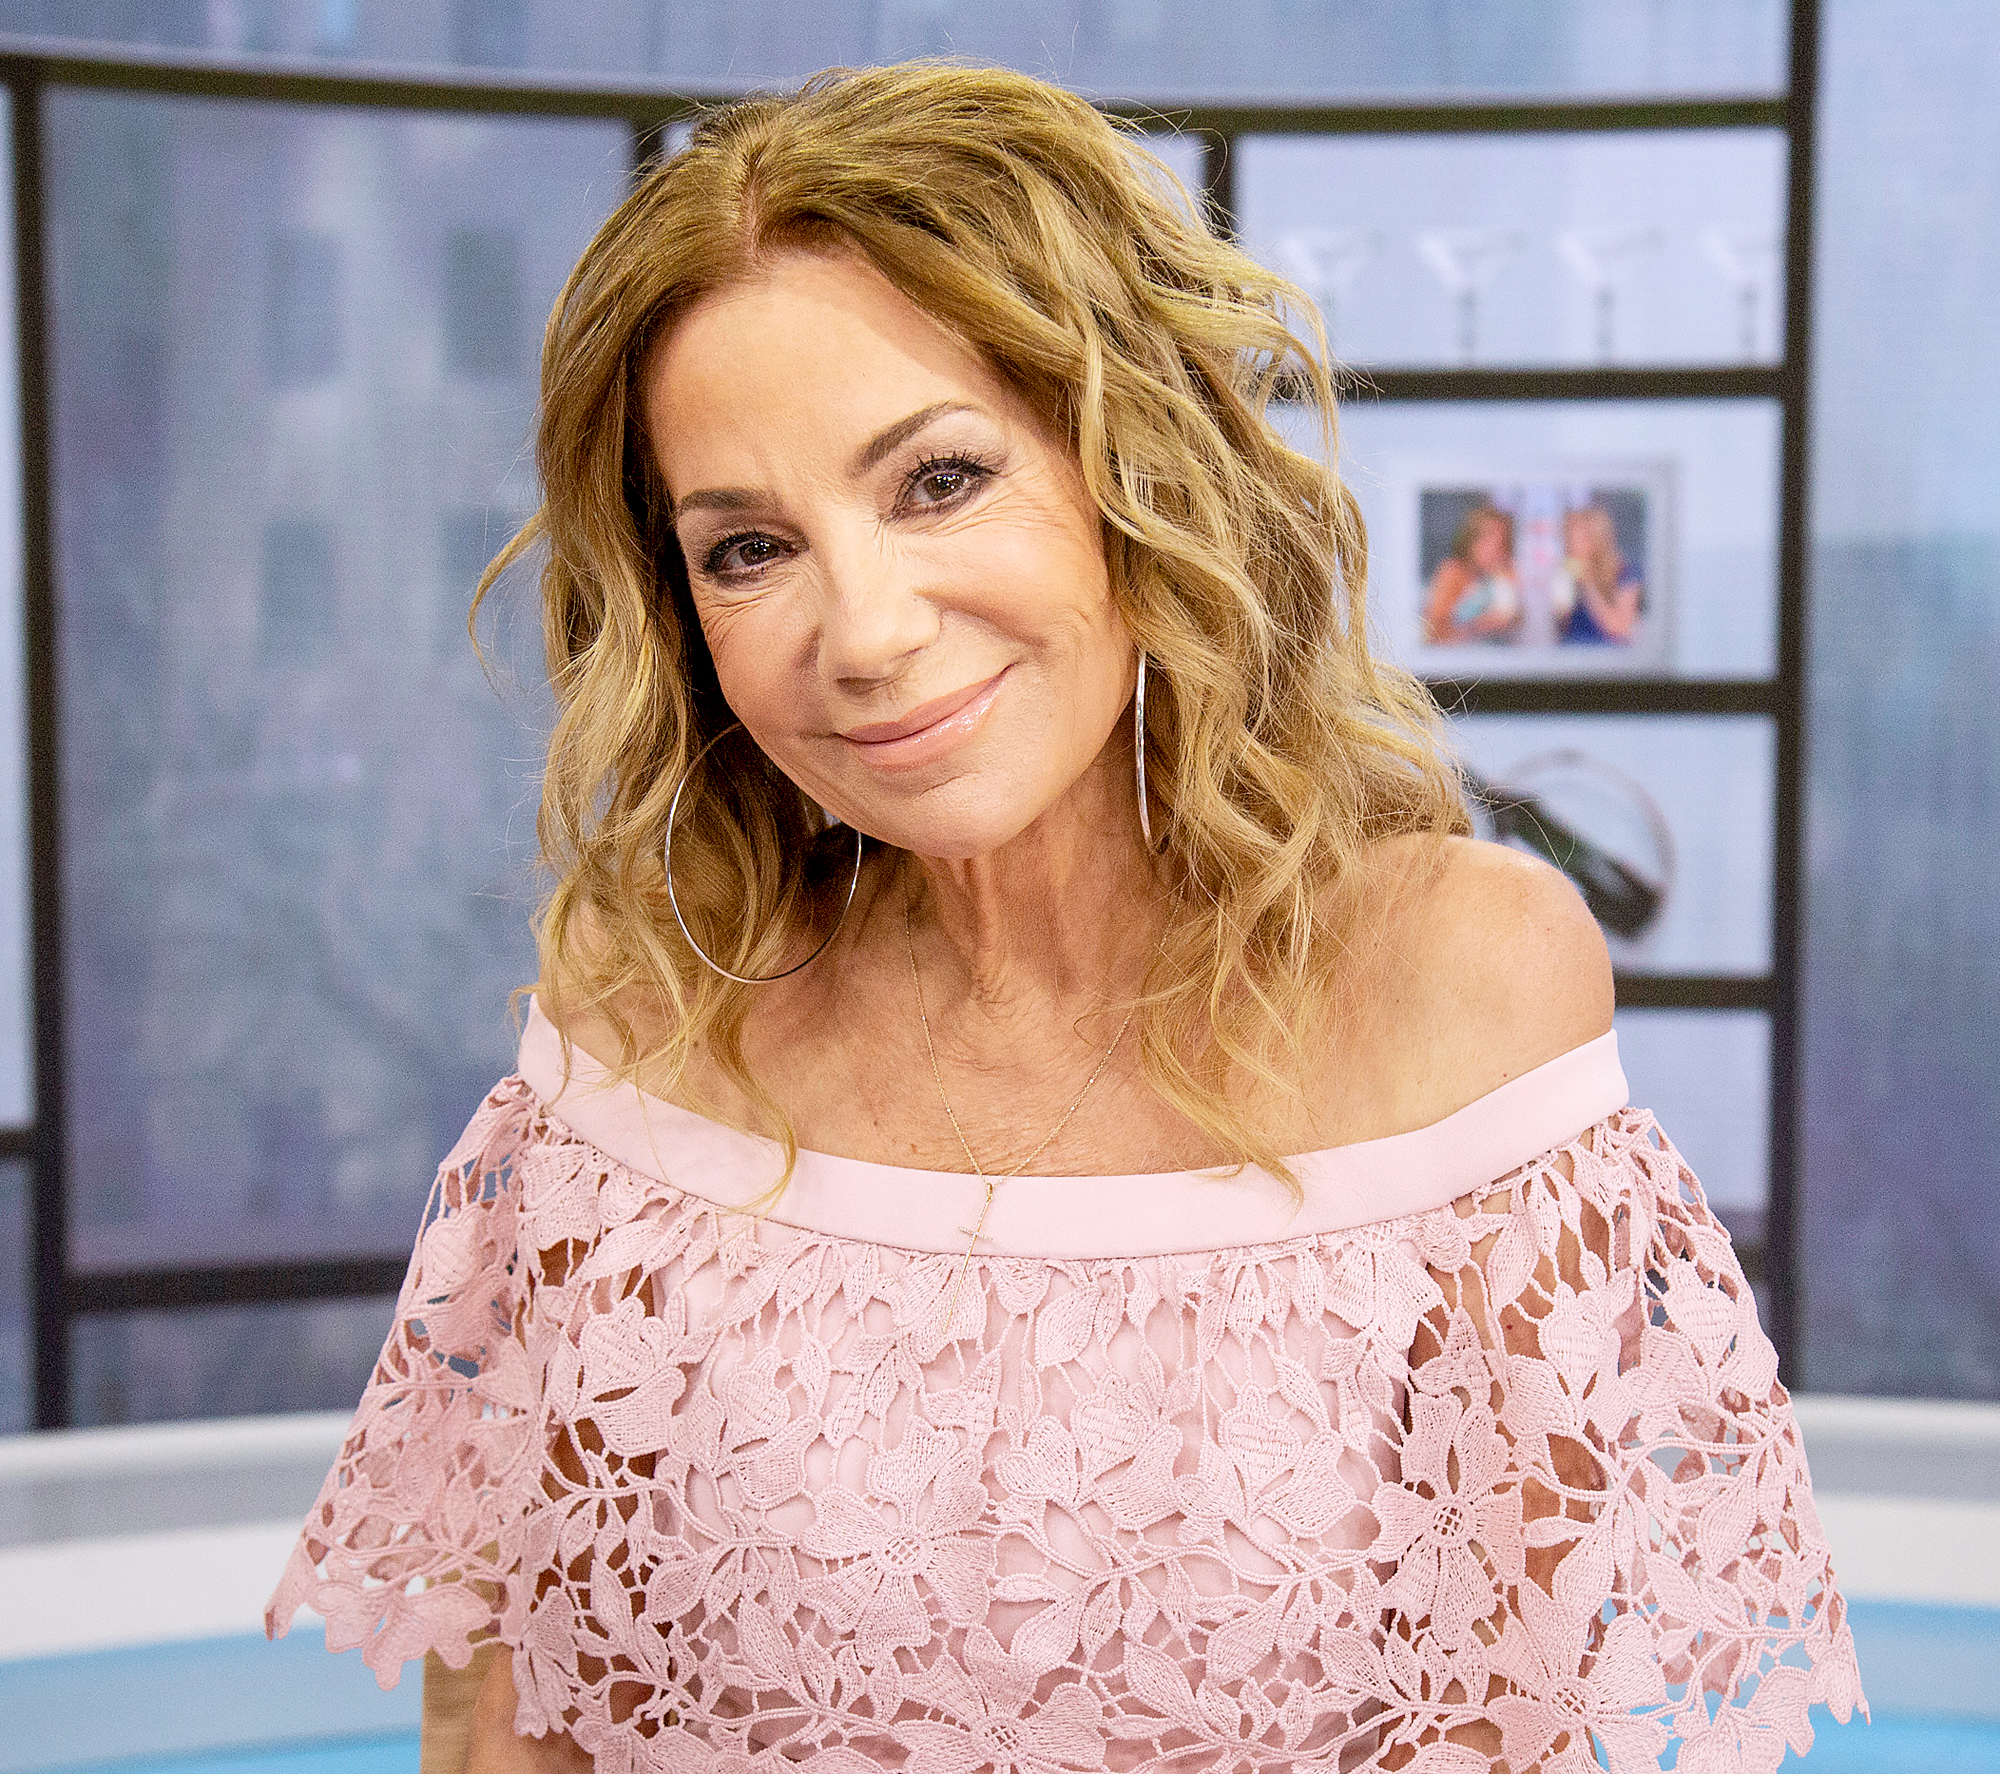 Kathie-Lee-Gifford-Life-After-Today